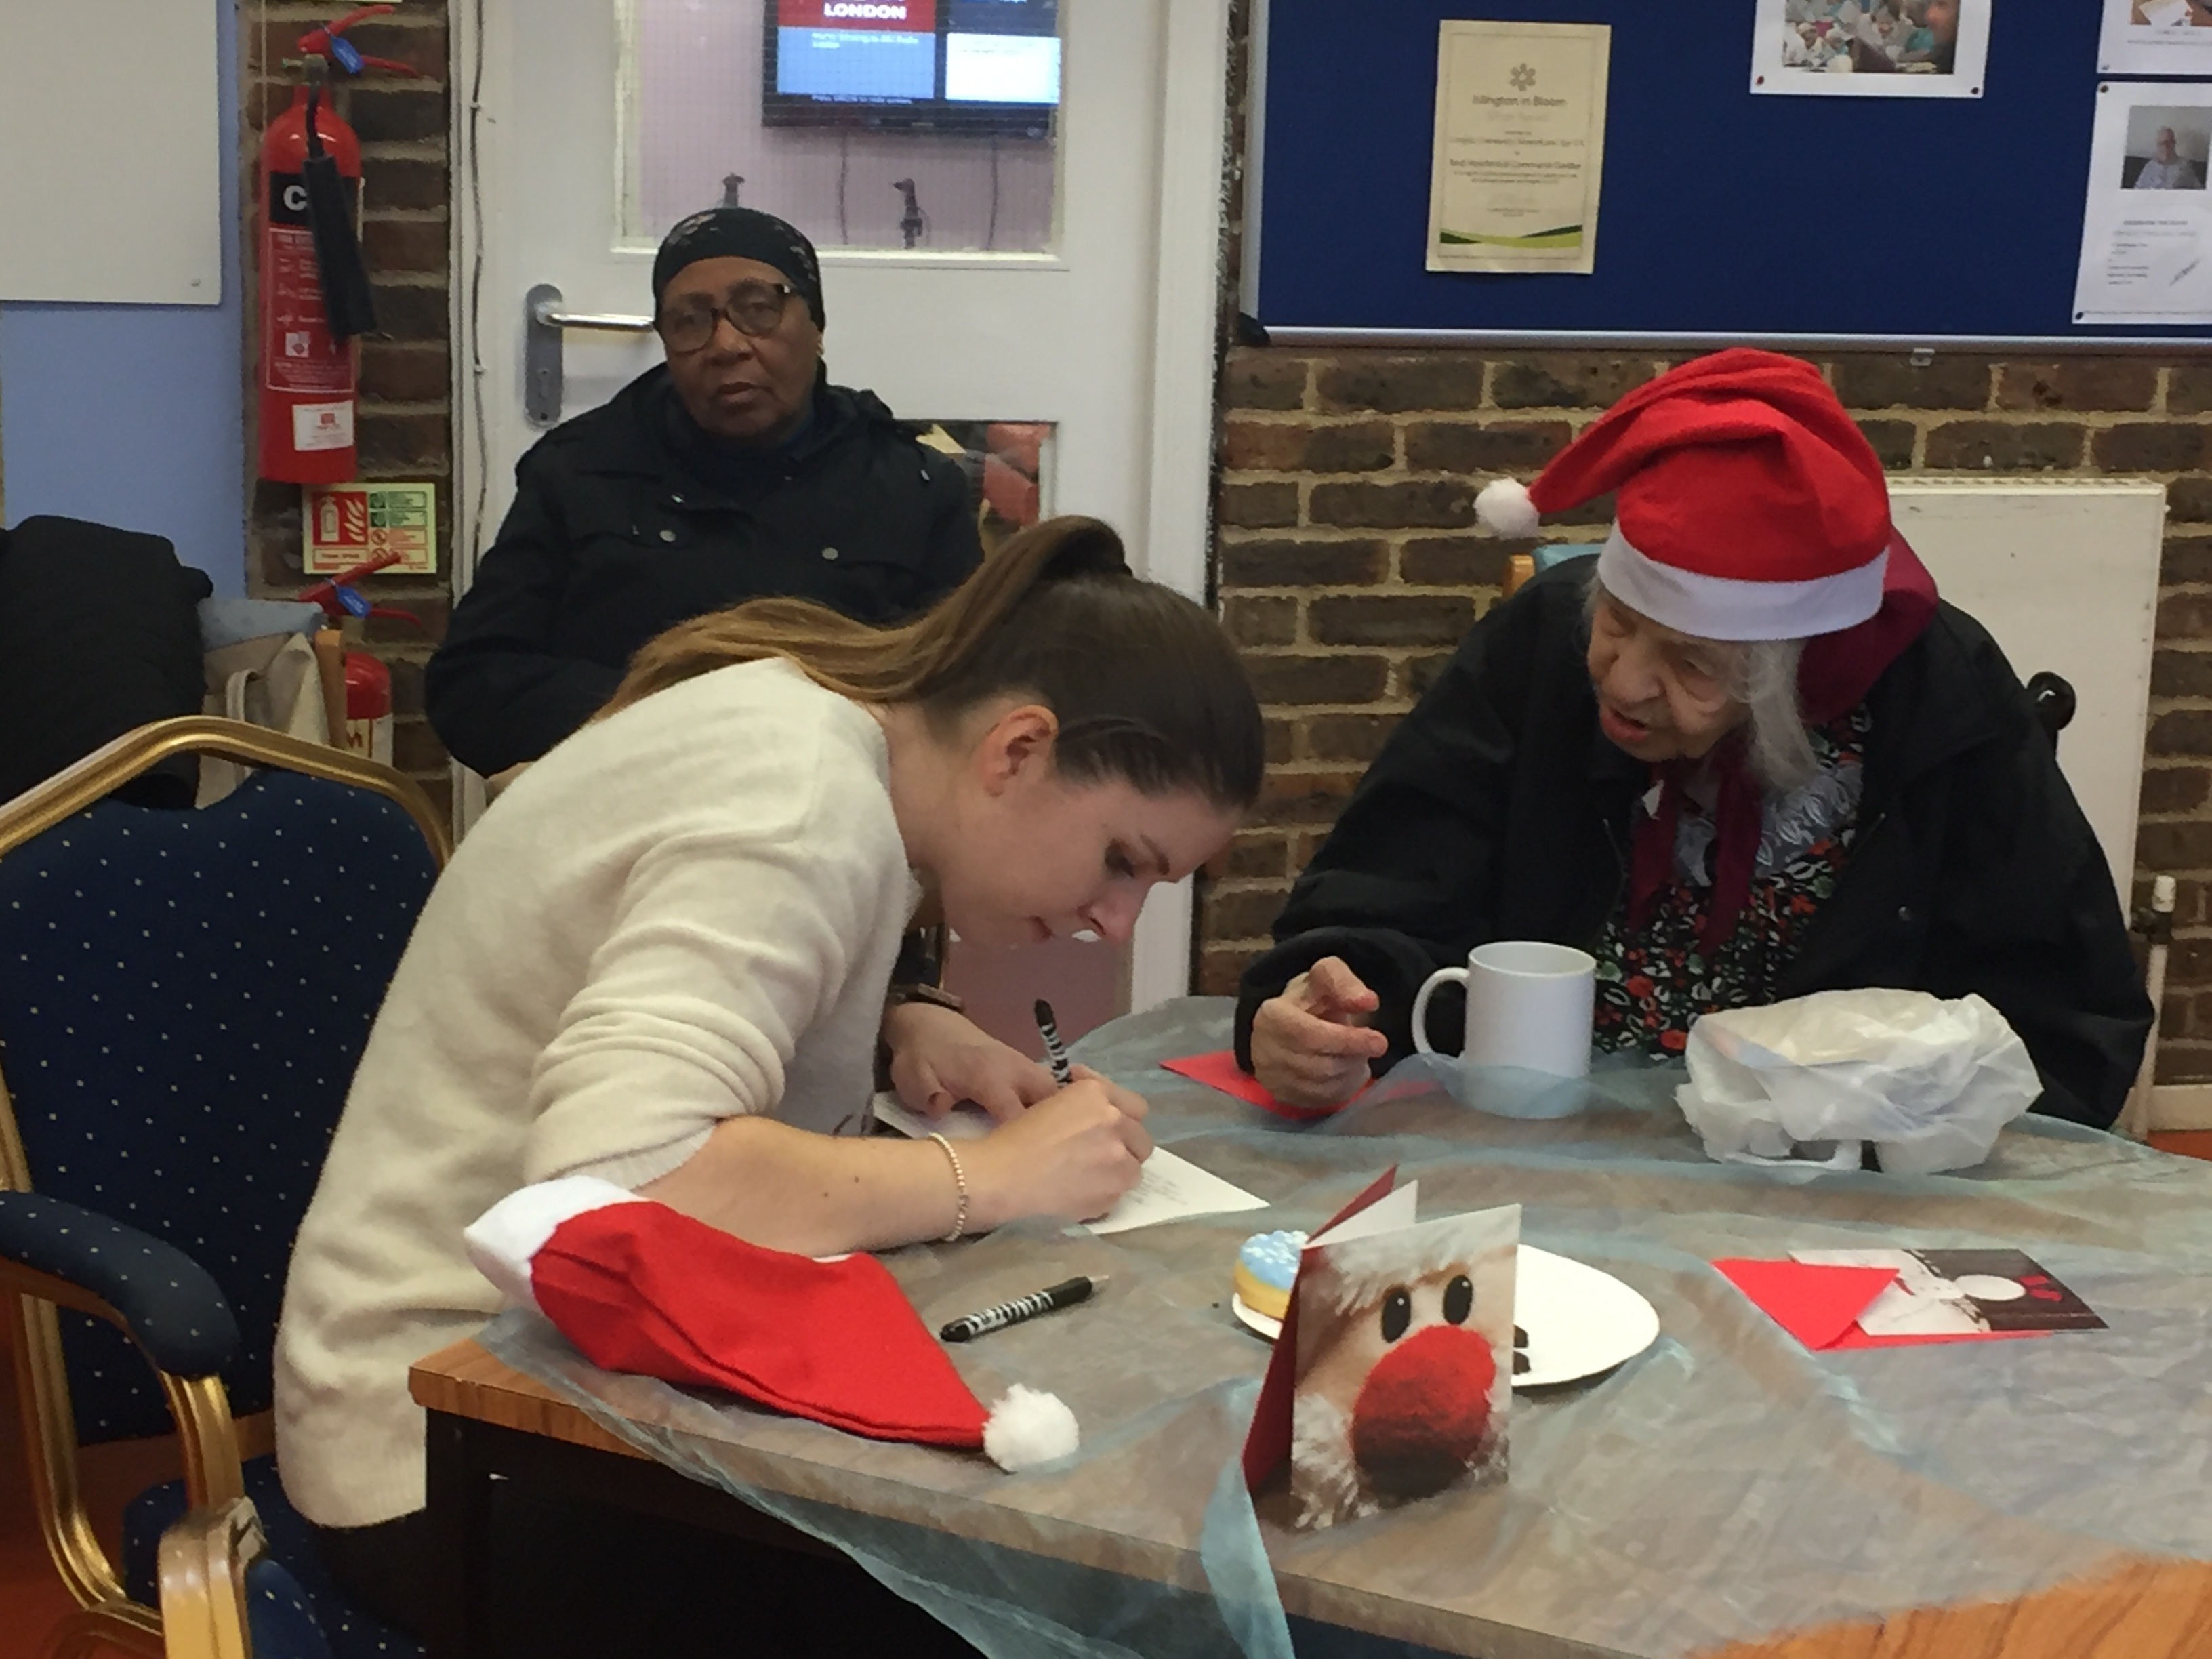 Above: Festive Friday in action at the Age UK Drovers Centre, instigated by the GCA.